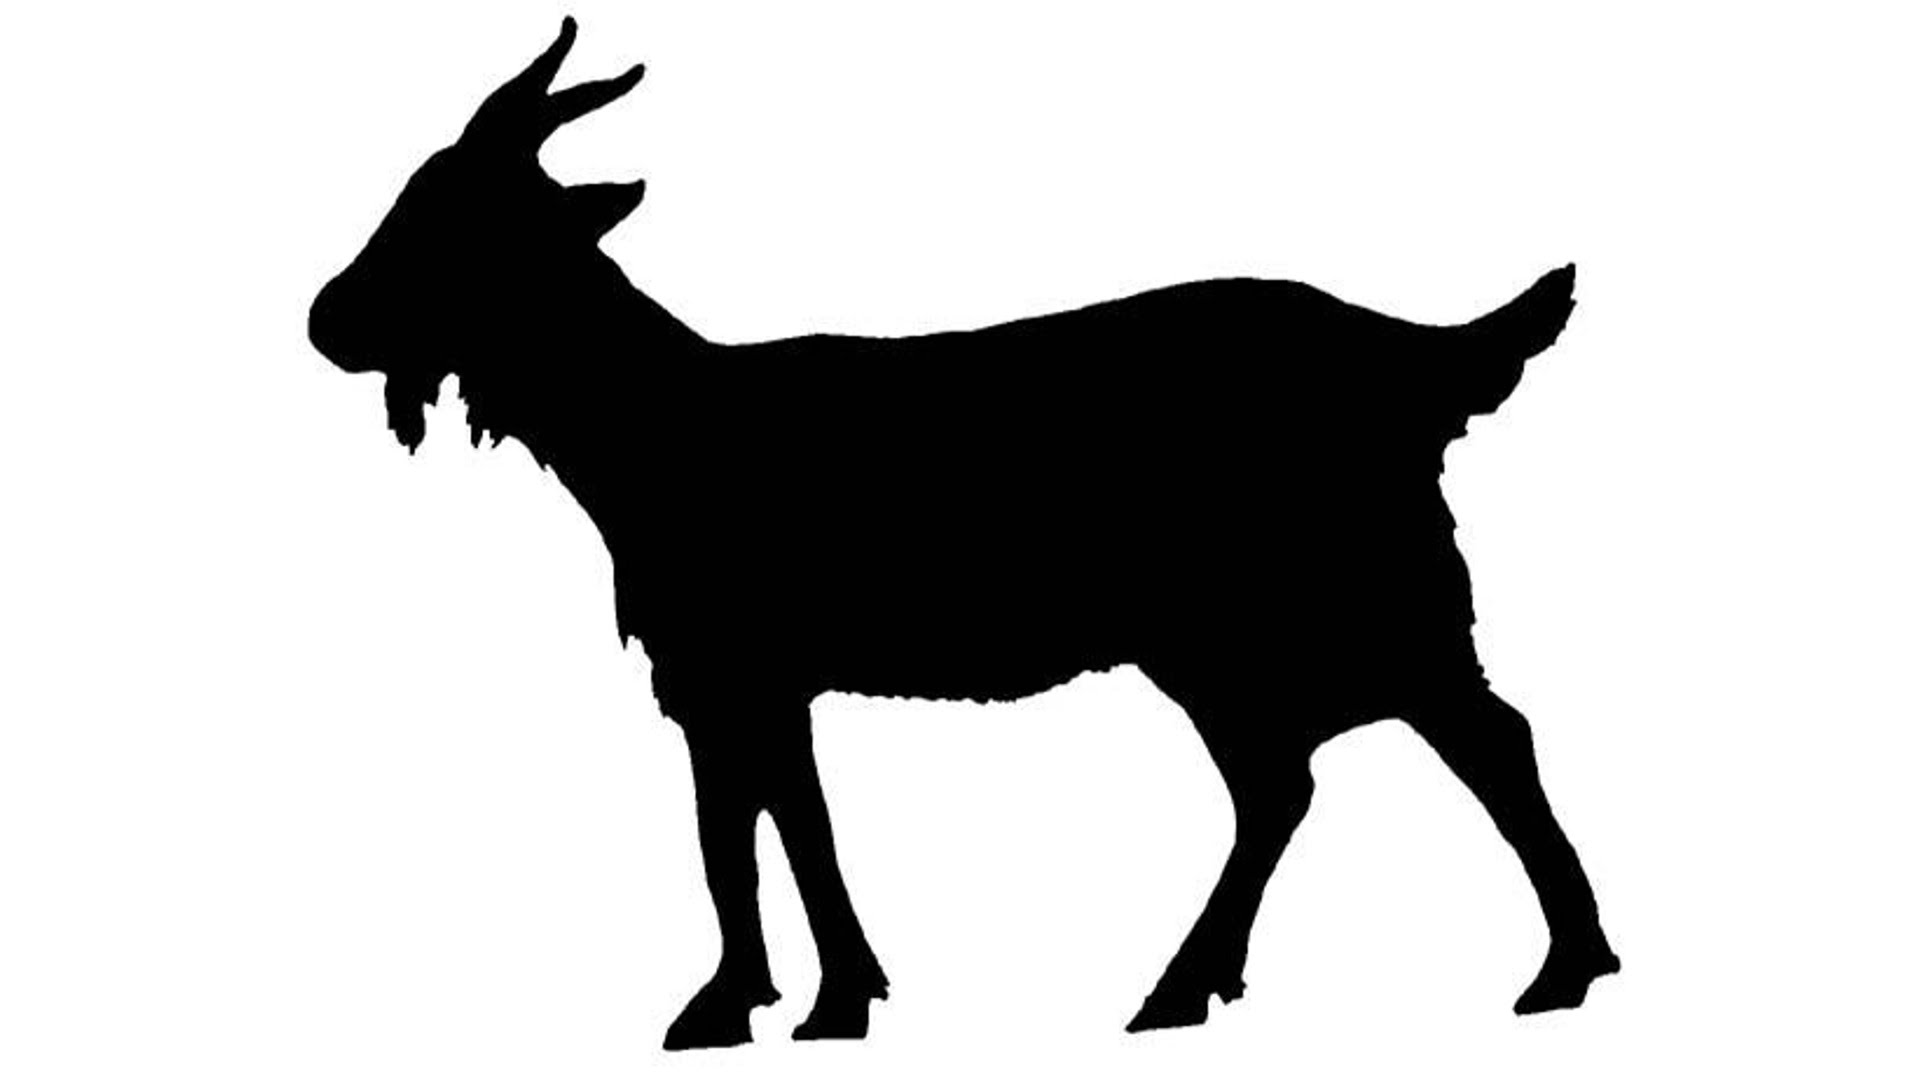 Show Goat Silhouette At Getdrawings Com Free For Personal Use Show Goat Silhouette Of Your Choice